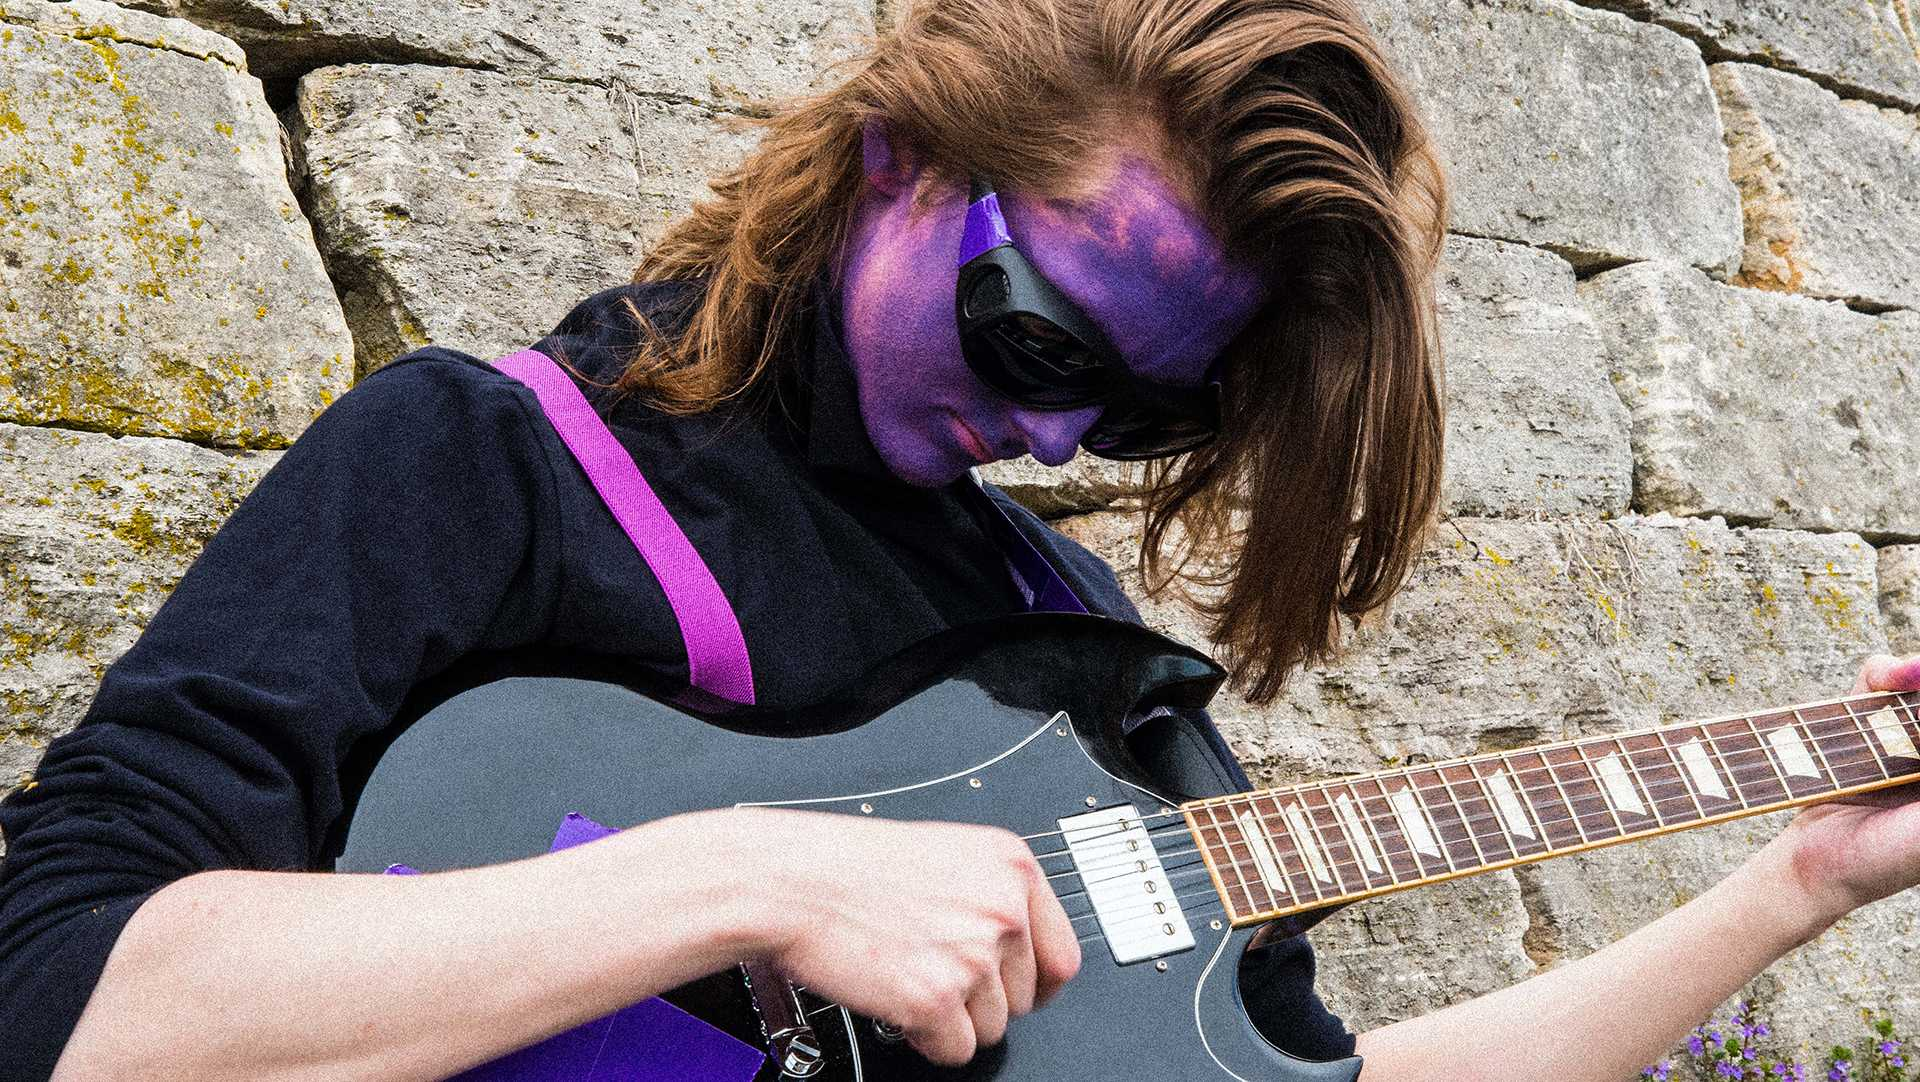 UI student trades textbooks for a guitar as Purple Frank